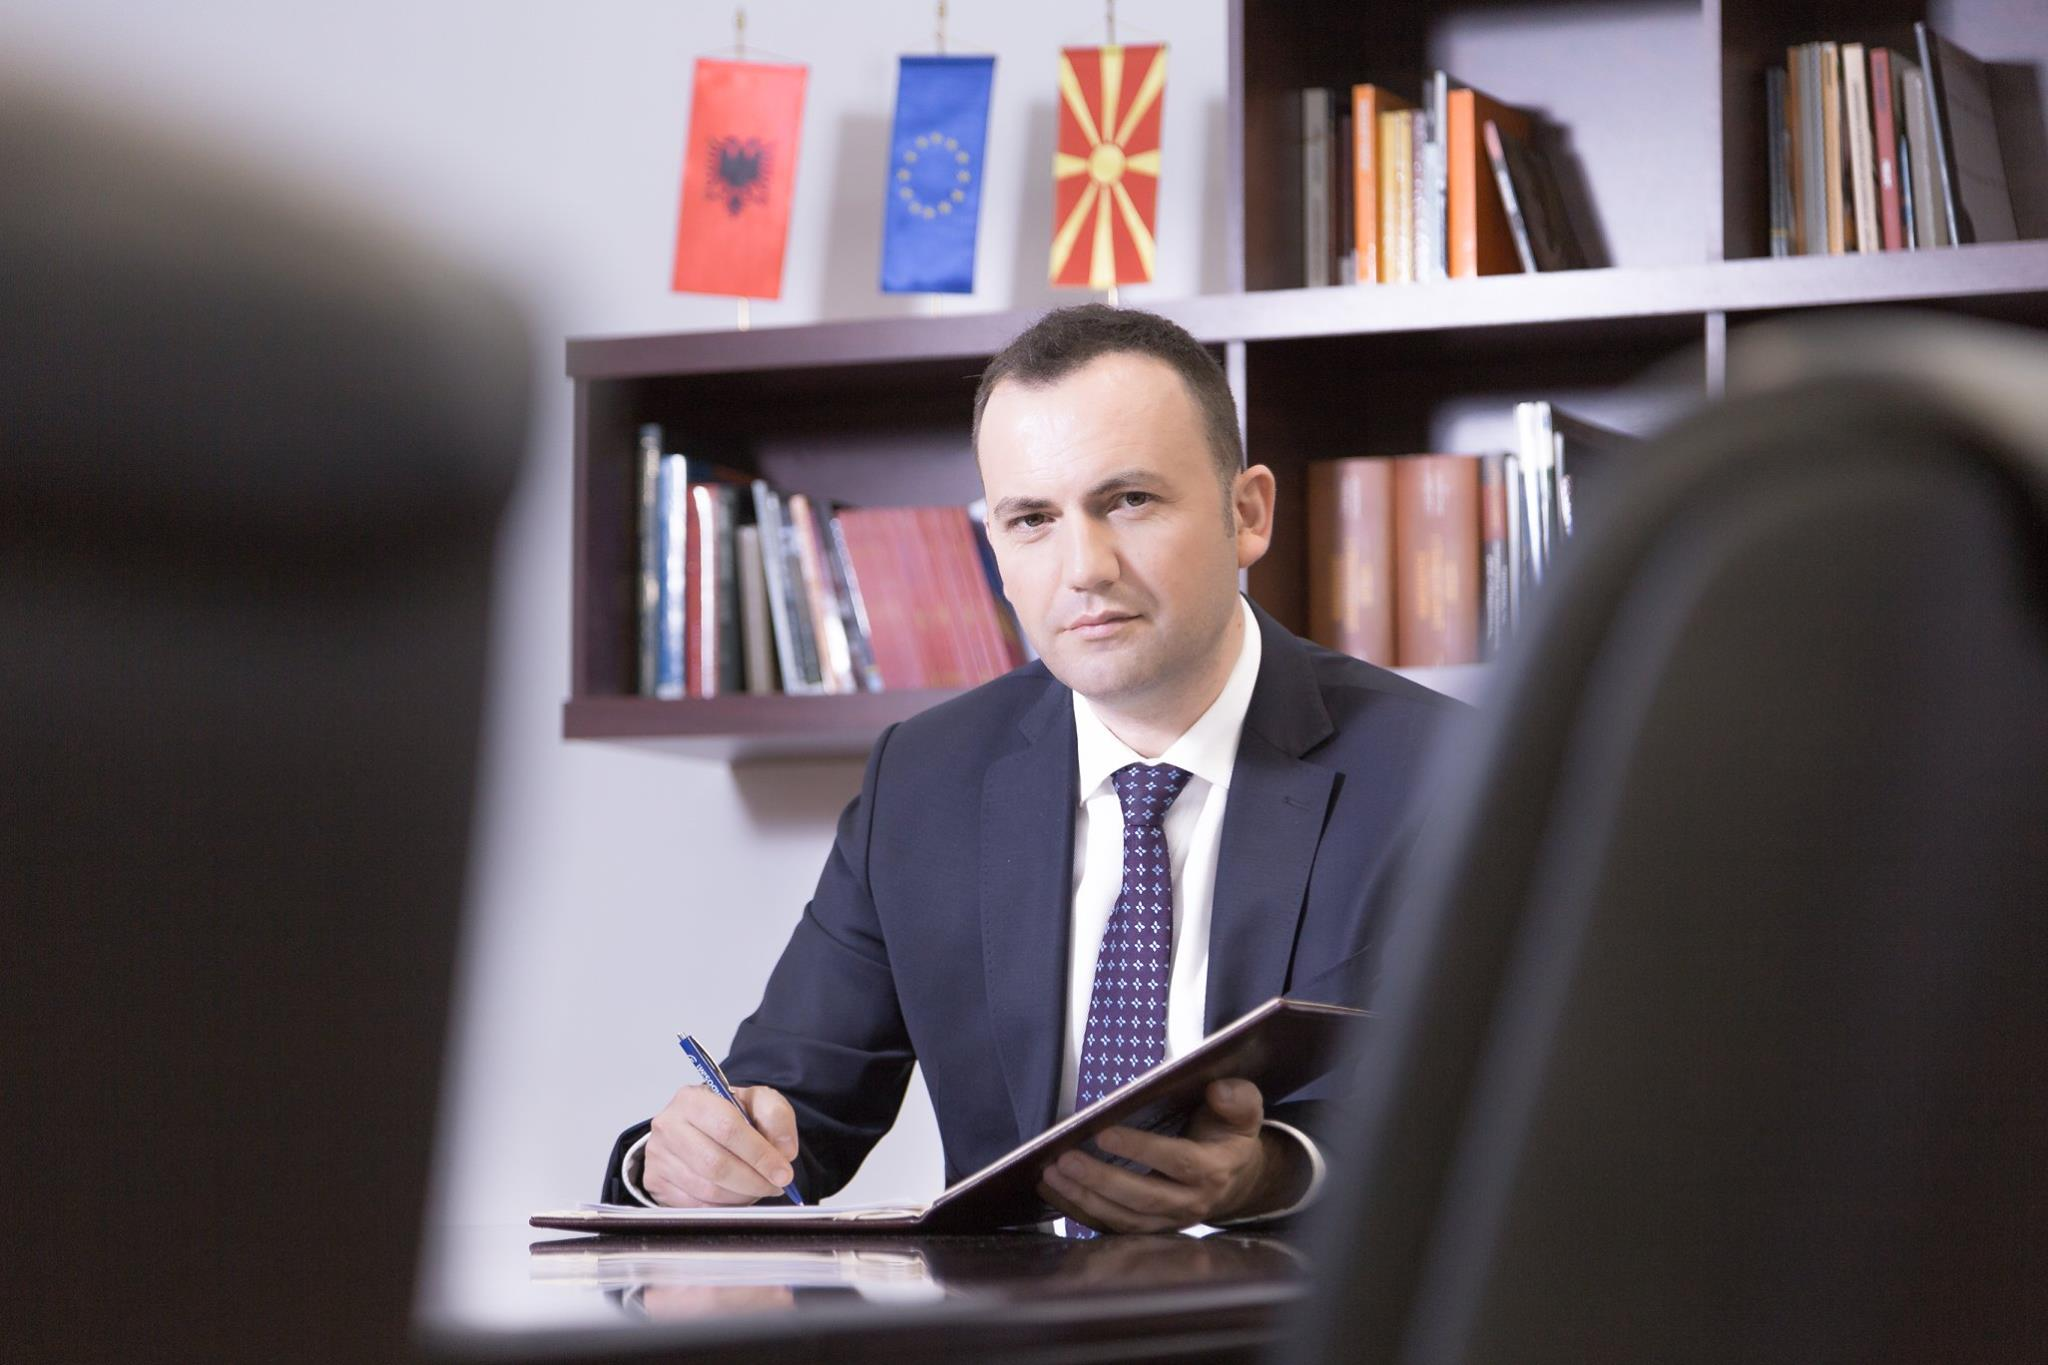 IBNA Interview/Deputy PM for European Integration: The new government wants to solve pending issues with neighbors